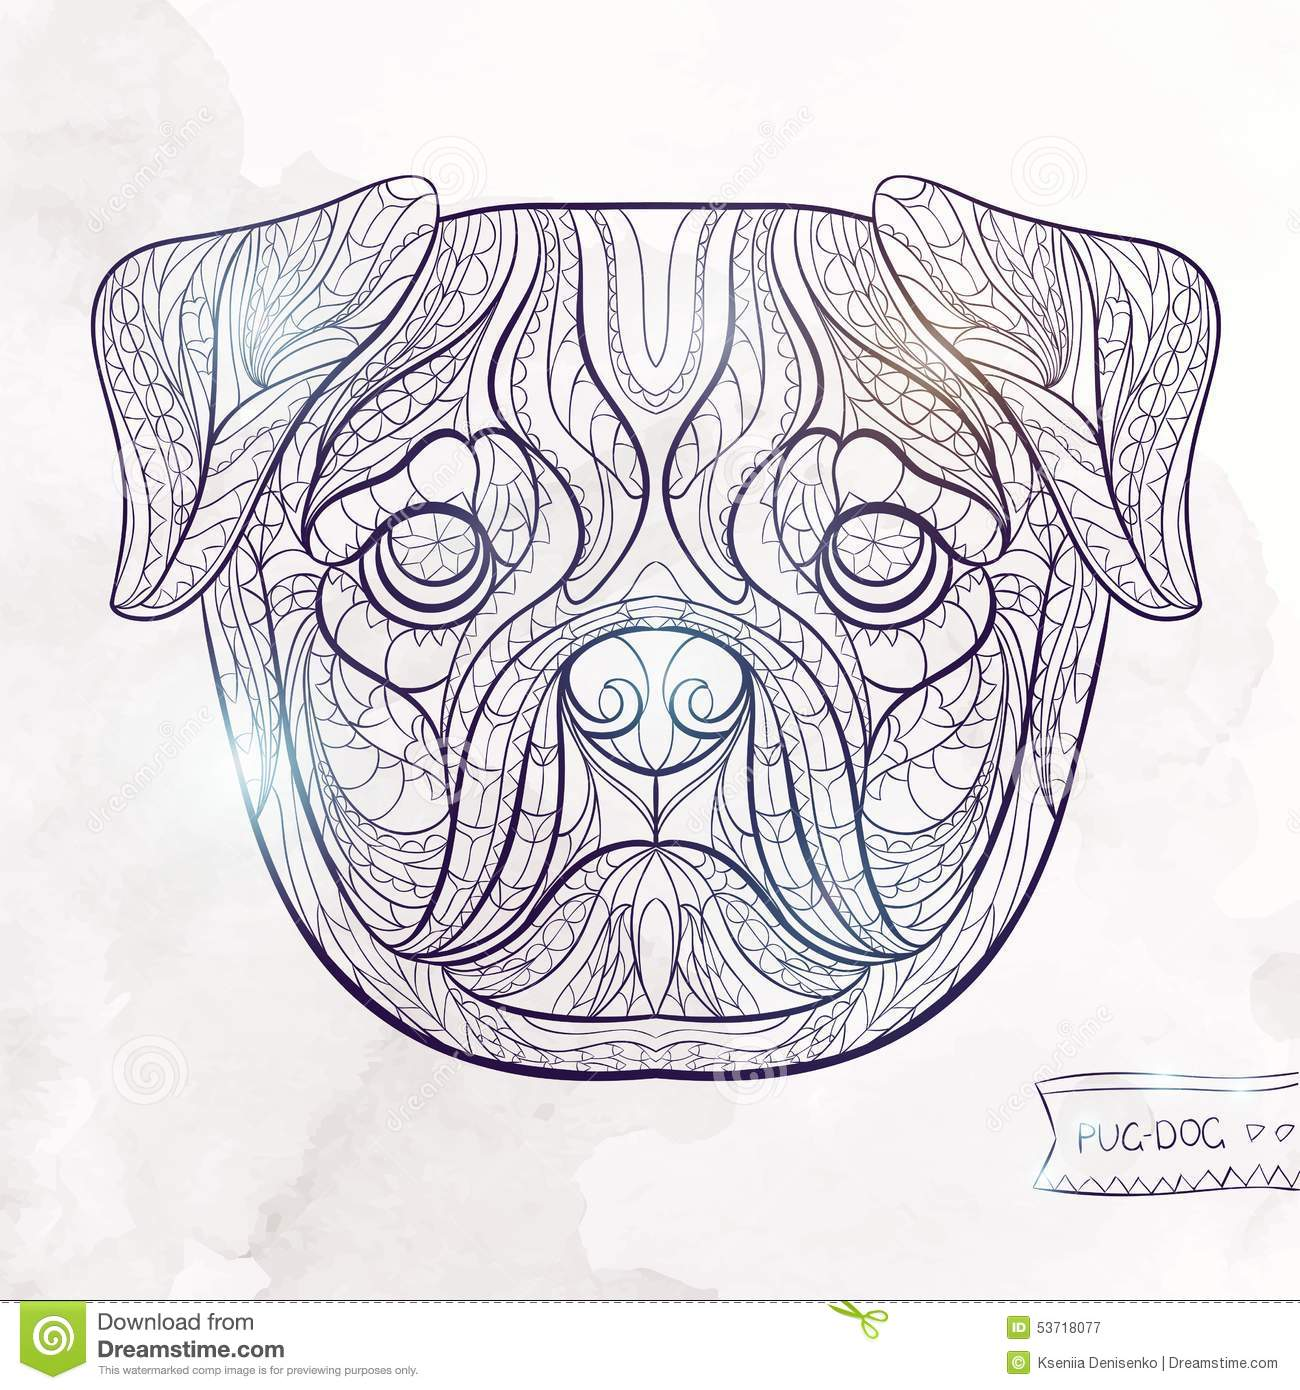 Ethnic Patterned Head Of Pug Dog Stock Vector